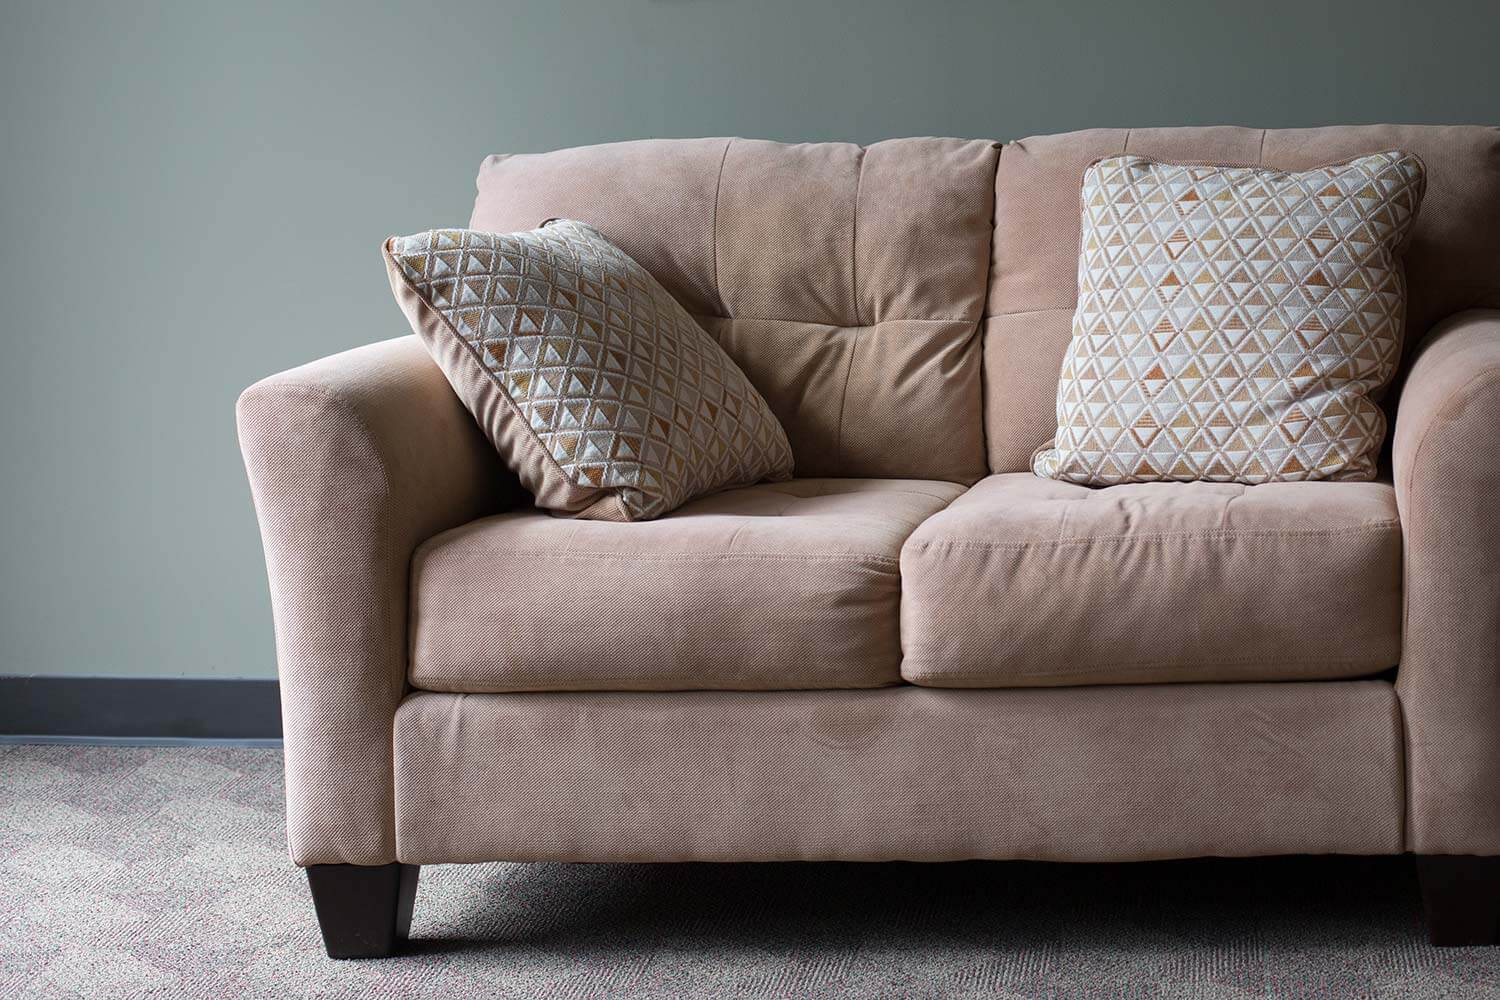 Upholstery Cleaning San Diego Great American Chem Dry